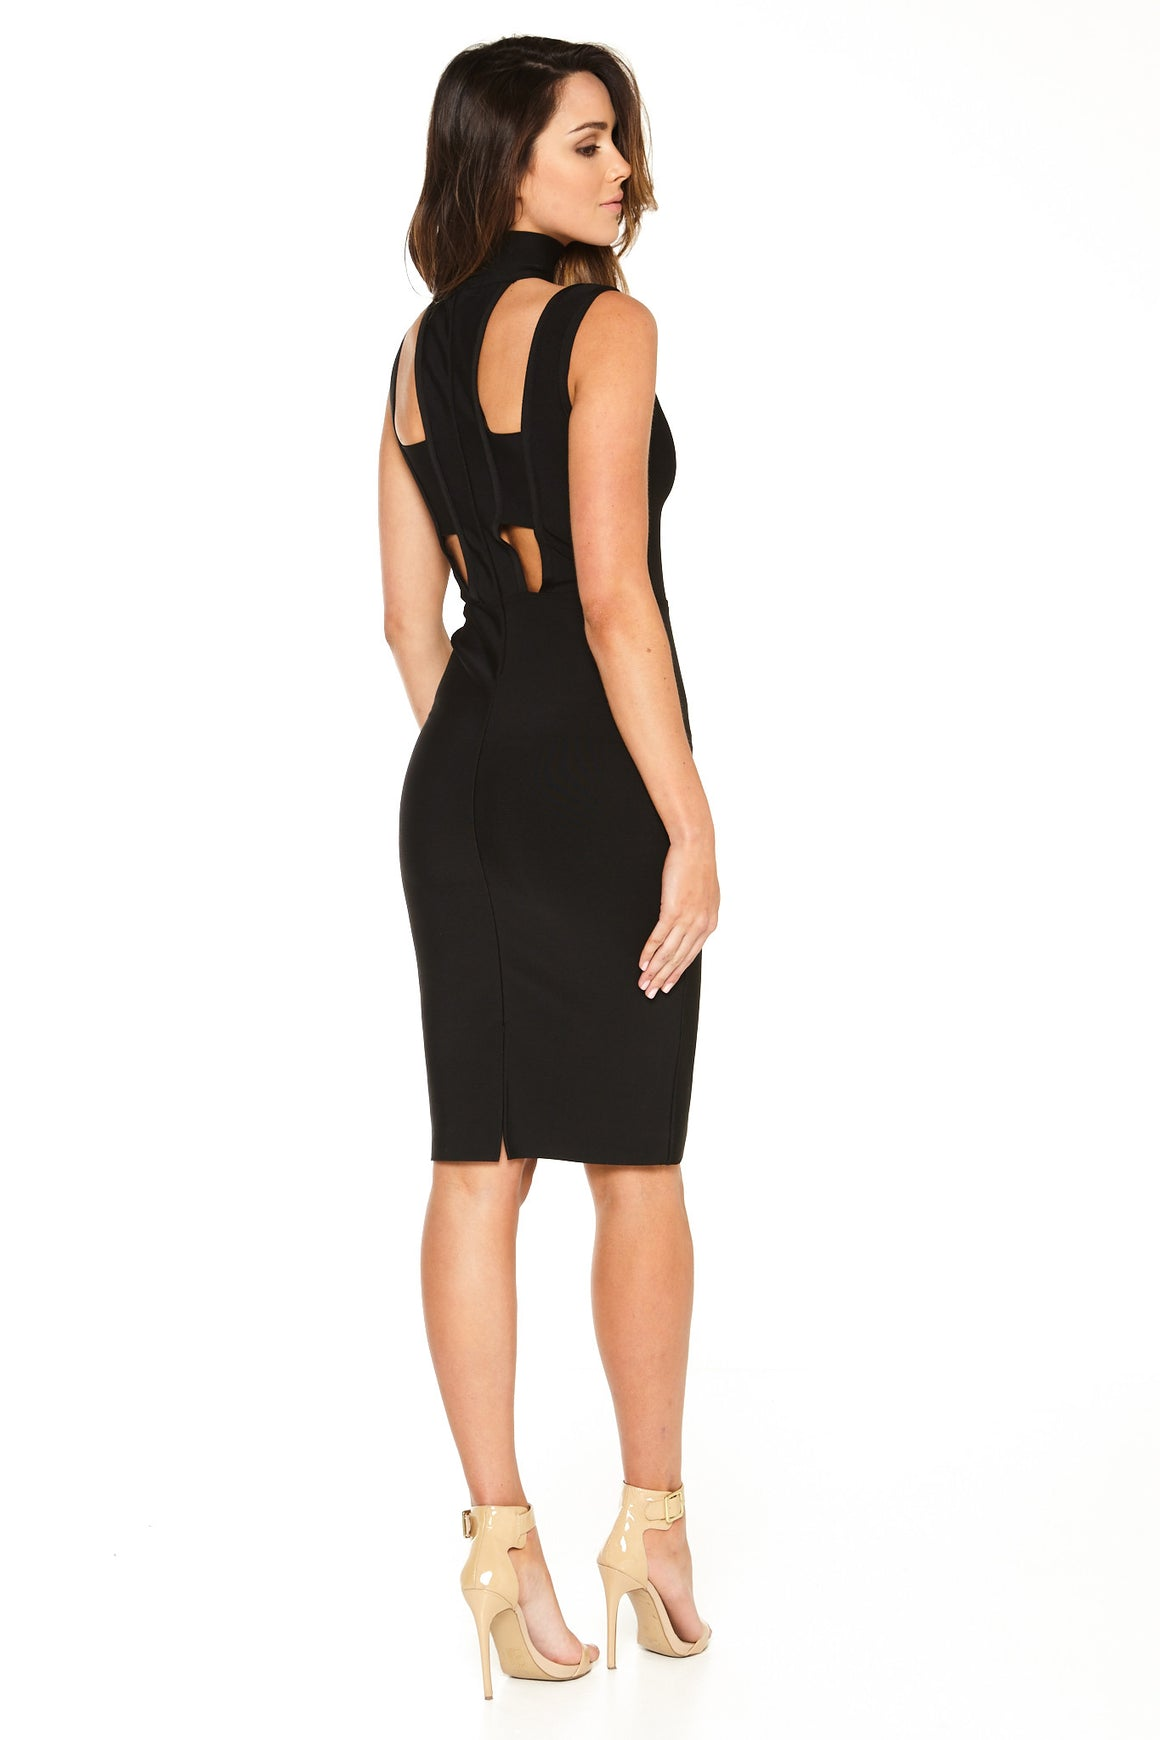 Harper Cutout Choker Bandage Dress - Black